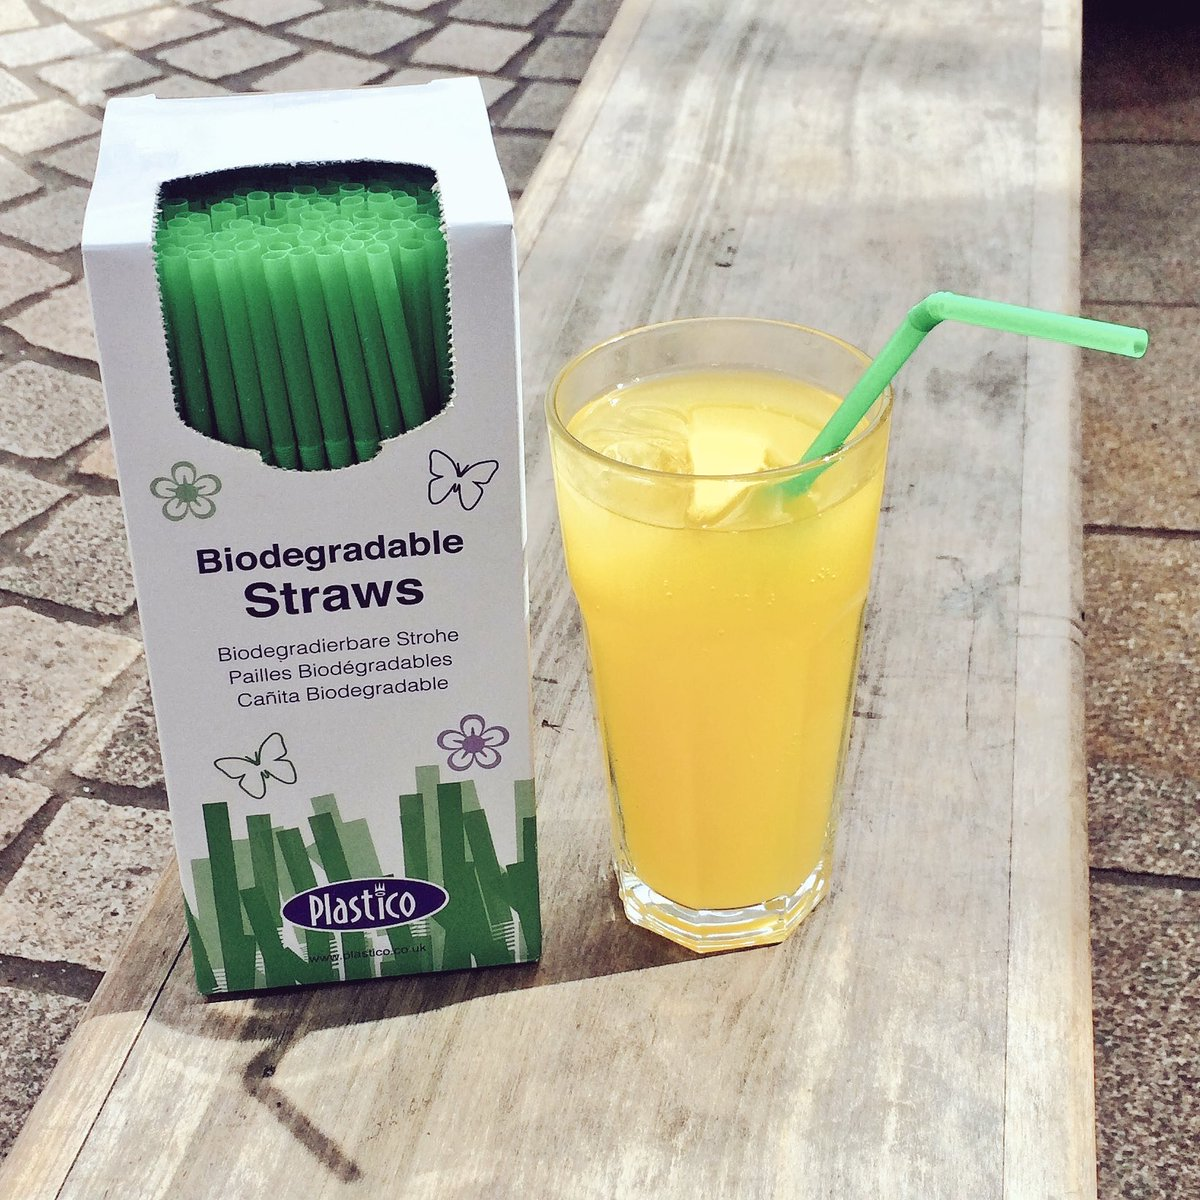 We try to be a conscientious company, we&#39;re now stocking Biodegradable straws to help reduce our plastic usage.  #SaveThePlanet <br>http://pic.twitter.com/plnBaxXVfr